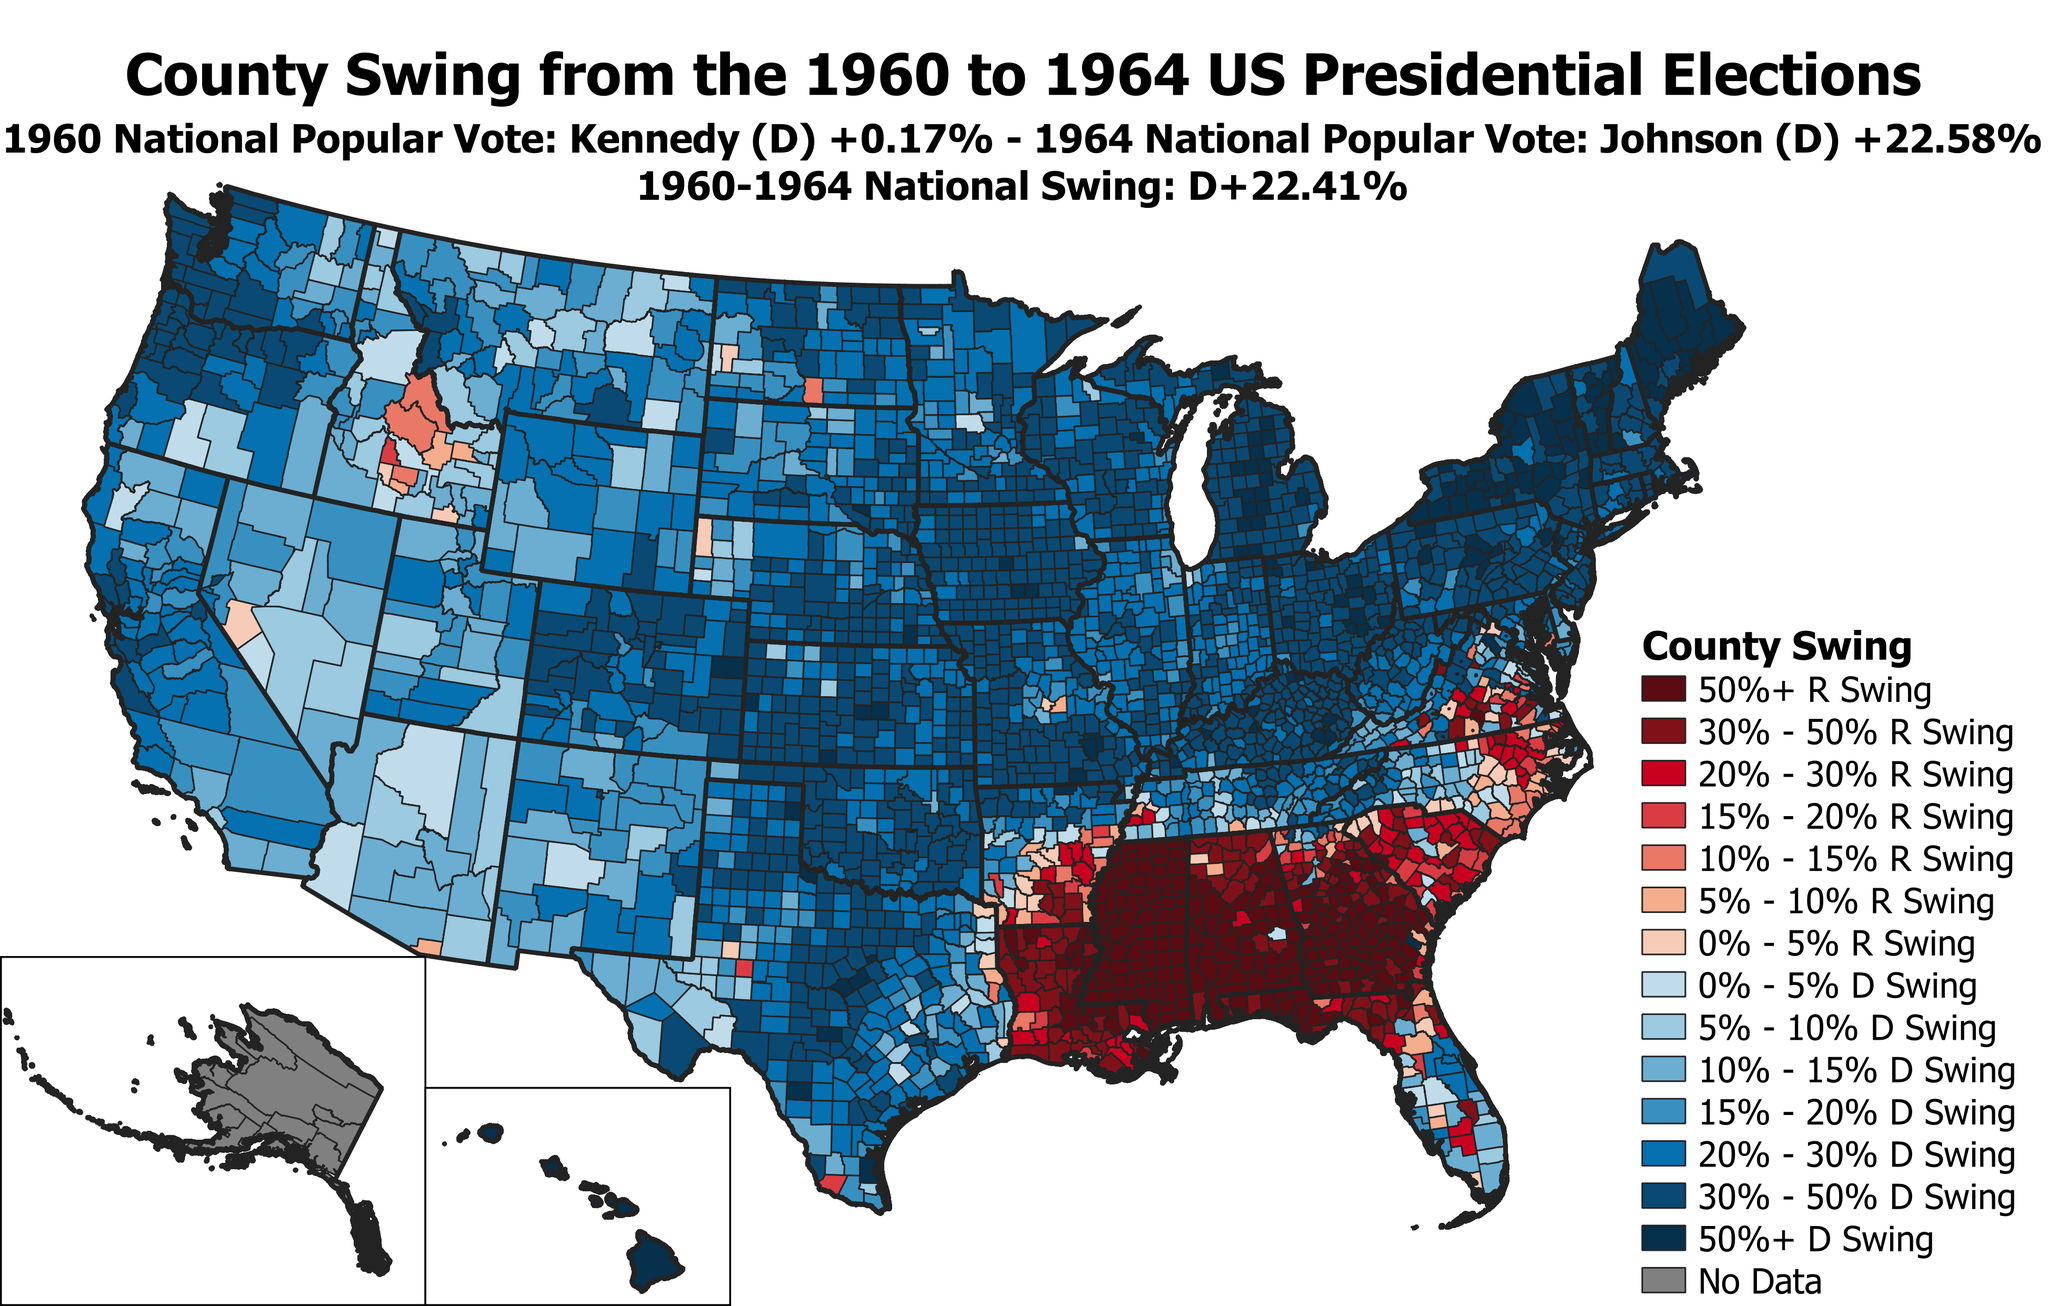 Picture of: Mill On Twitter Electiontwitter County Map Of The Swing From The 1960 To 1964 Us Presidential Elections Lbj Improved On Kennedy S Margins Almost Everywhere Except For The Deep South Where Goldwater S Opposition